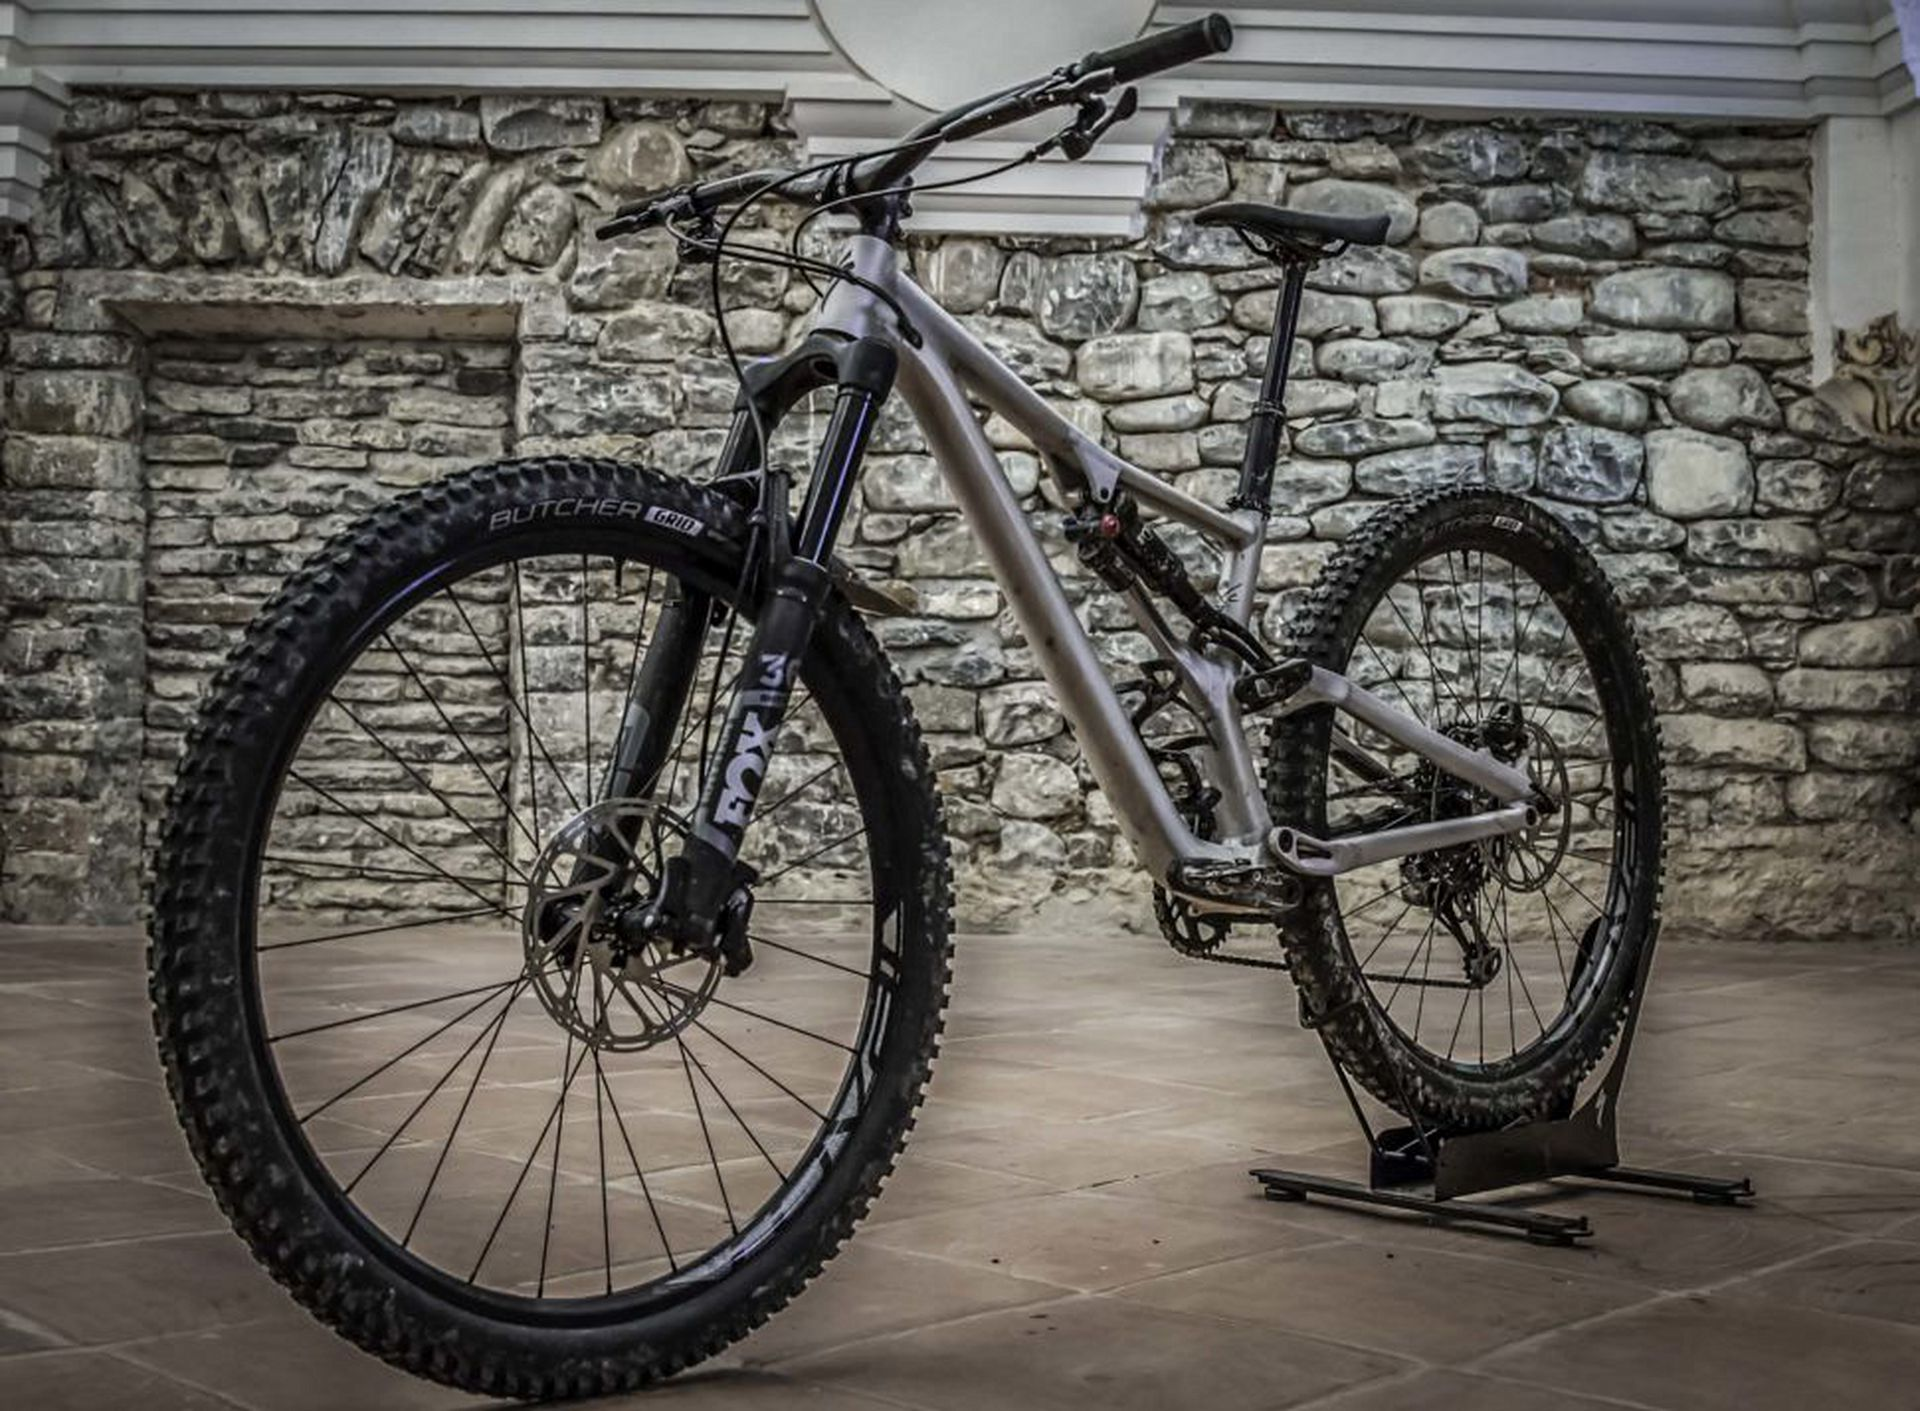 Several frame geometries were taken into consideration when developing the all-new Stumpjumper Evo models. Although it has the bones of a trail bike, the Evo comes to life when trails are steep and high-speed. The Stumpjumper Evo Comp 29 shown here sells for $3,600.